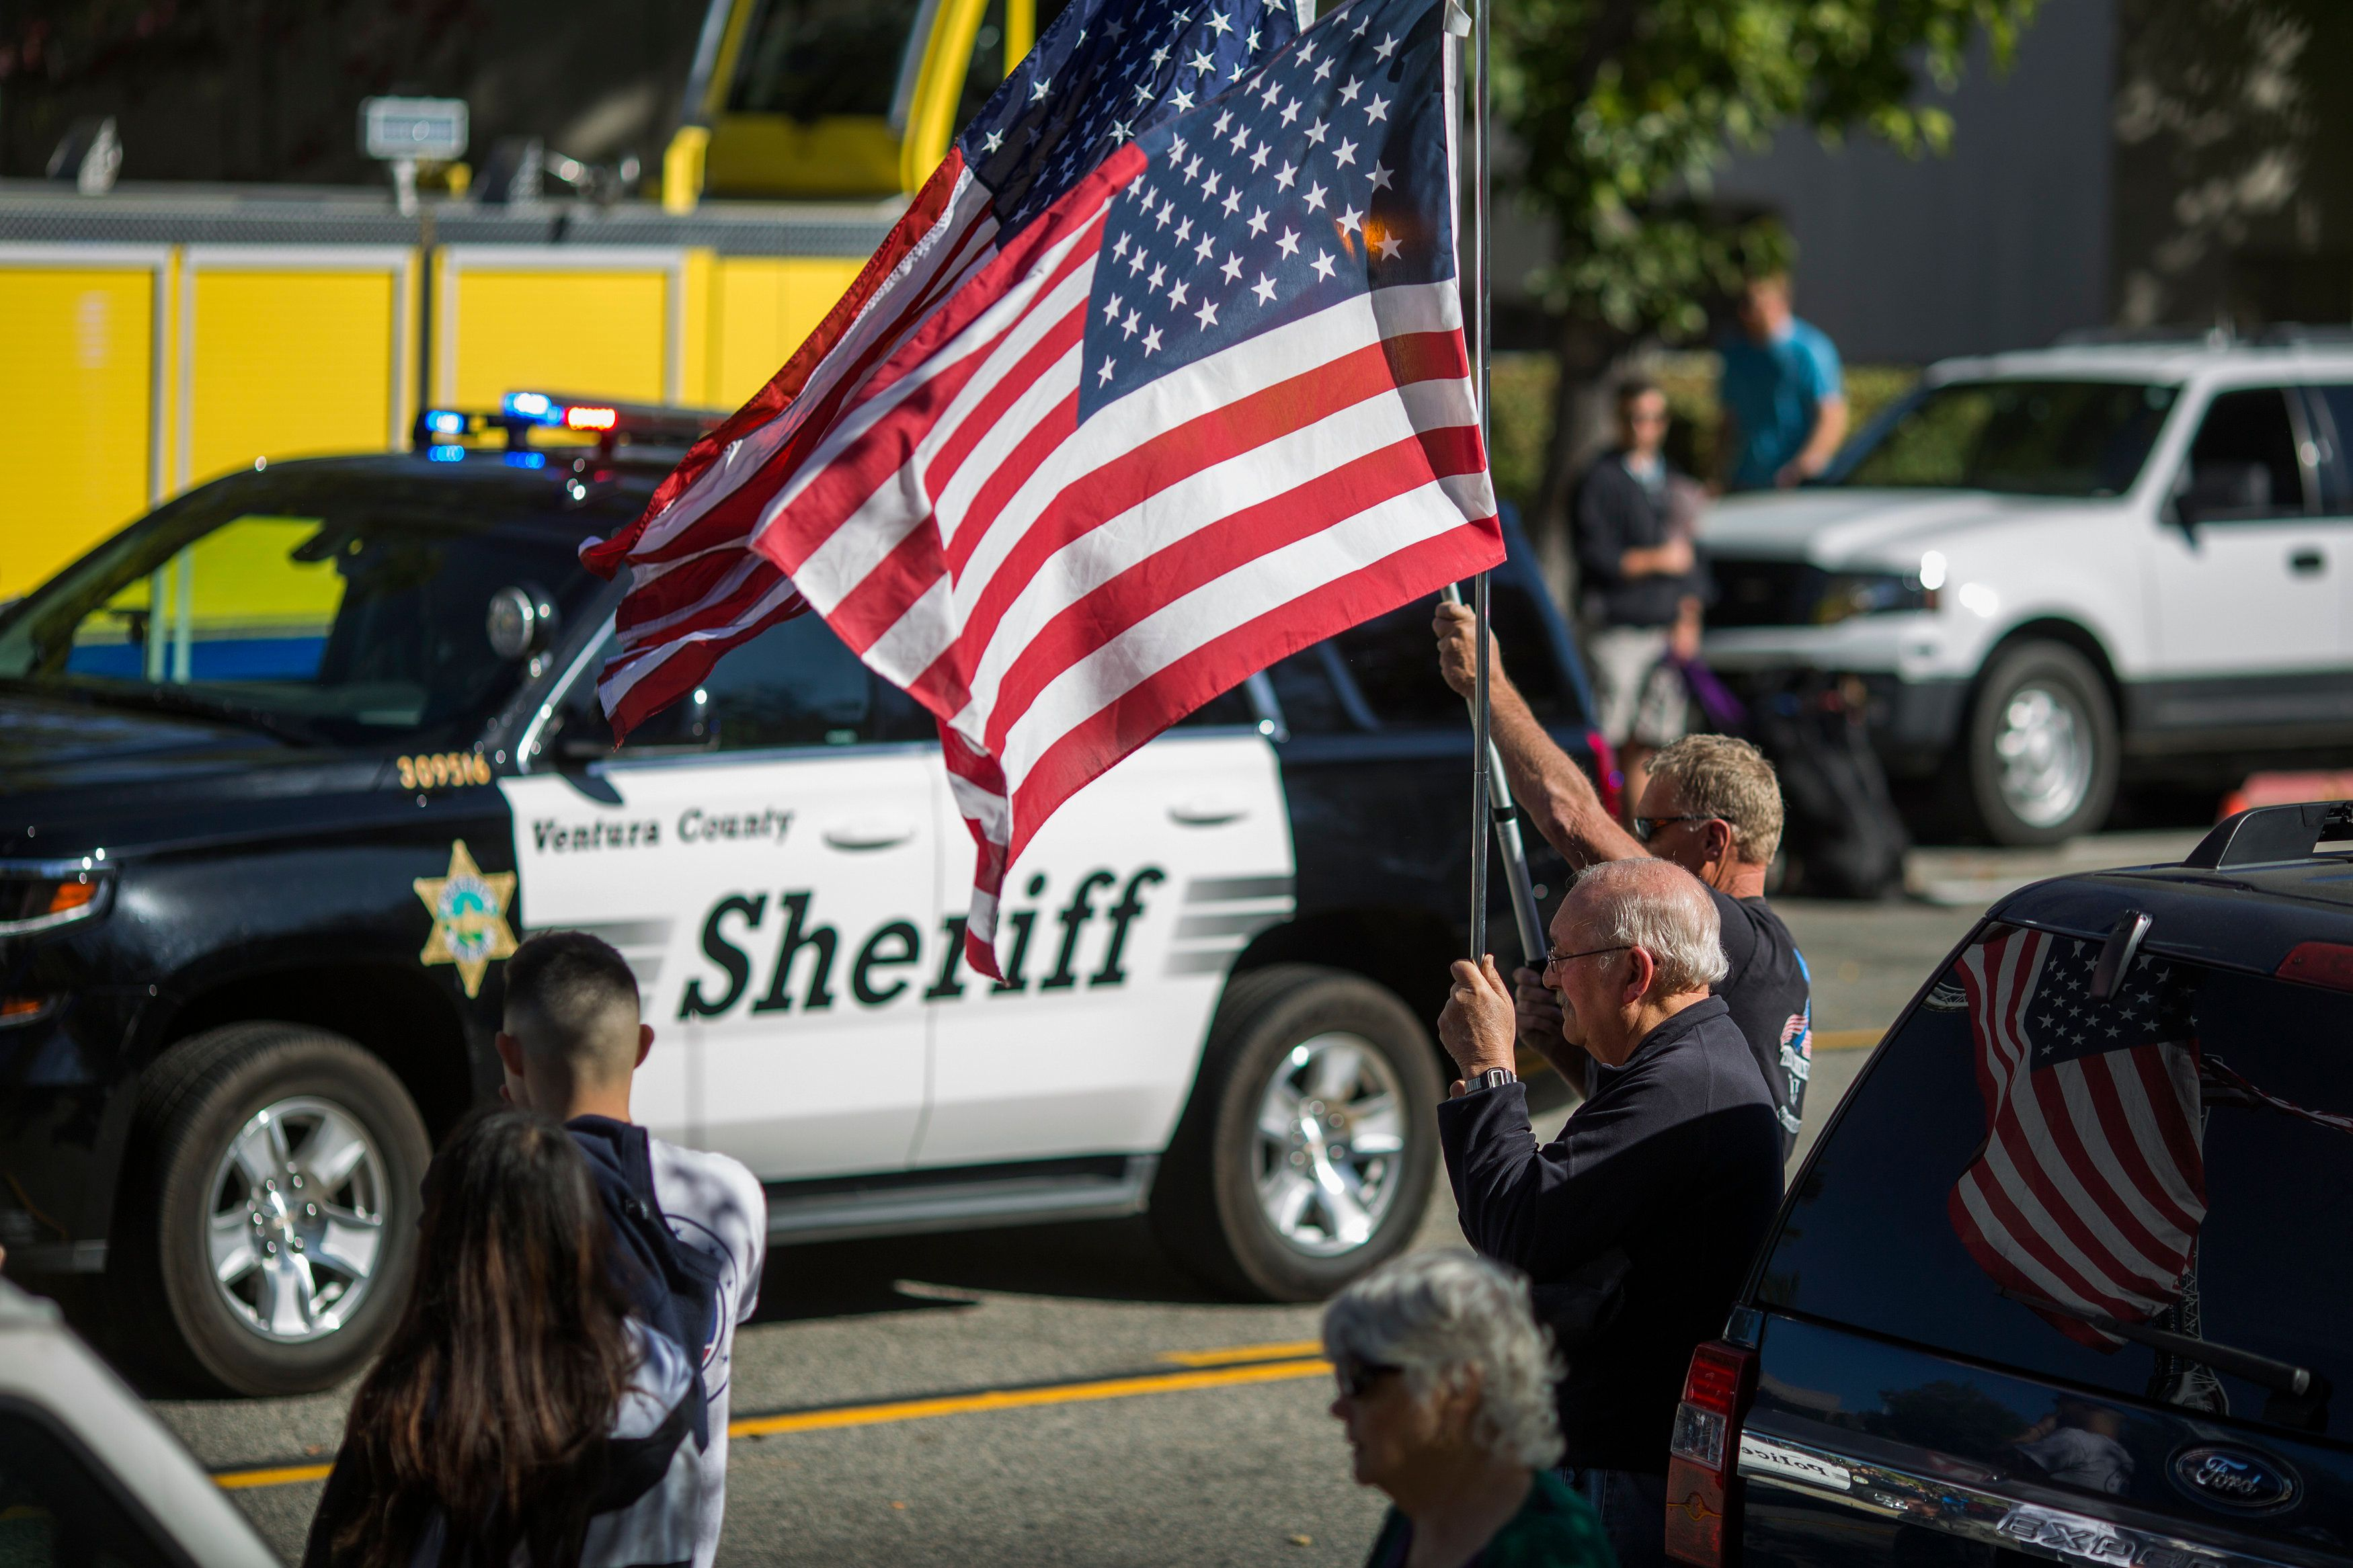 THOUSAND OAKS, CA - NOVEMBER 08: People hold flags as the procession carrying the body of Ventura County Sheriffs Sgt. Ron Helus, who was killed in a mass shooting at the Borderline Bar and Grill, leaves Los Robles Hospital on November 8, 2018 in Thousand Oaks, California. Twelve people were killed, including the sergeant and the gunman, after a mass shooting at the Borderline Bar and Grill in Thousand Oaks late Wednesday night.  (Photo by David McNew/Getty Images)